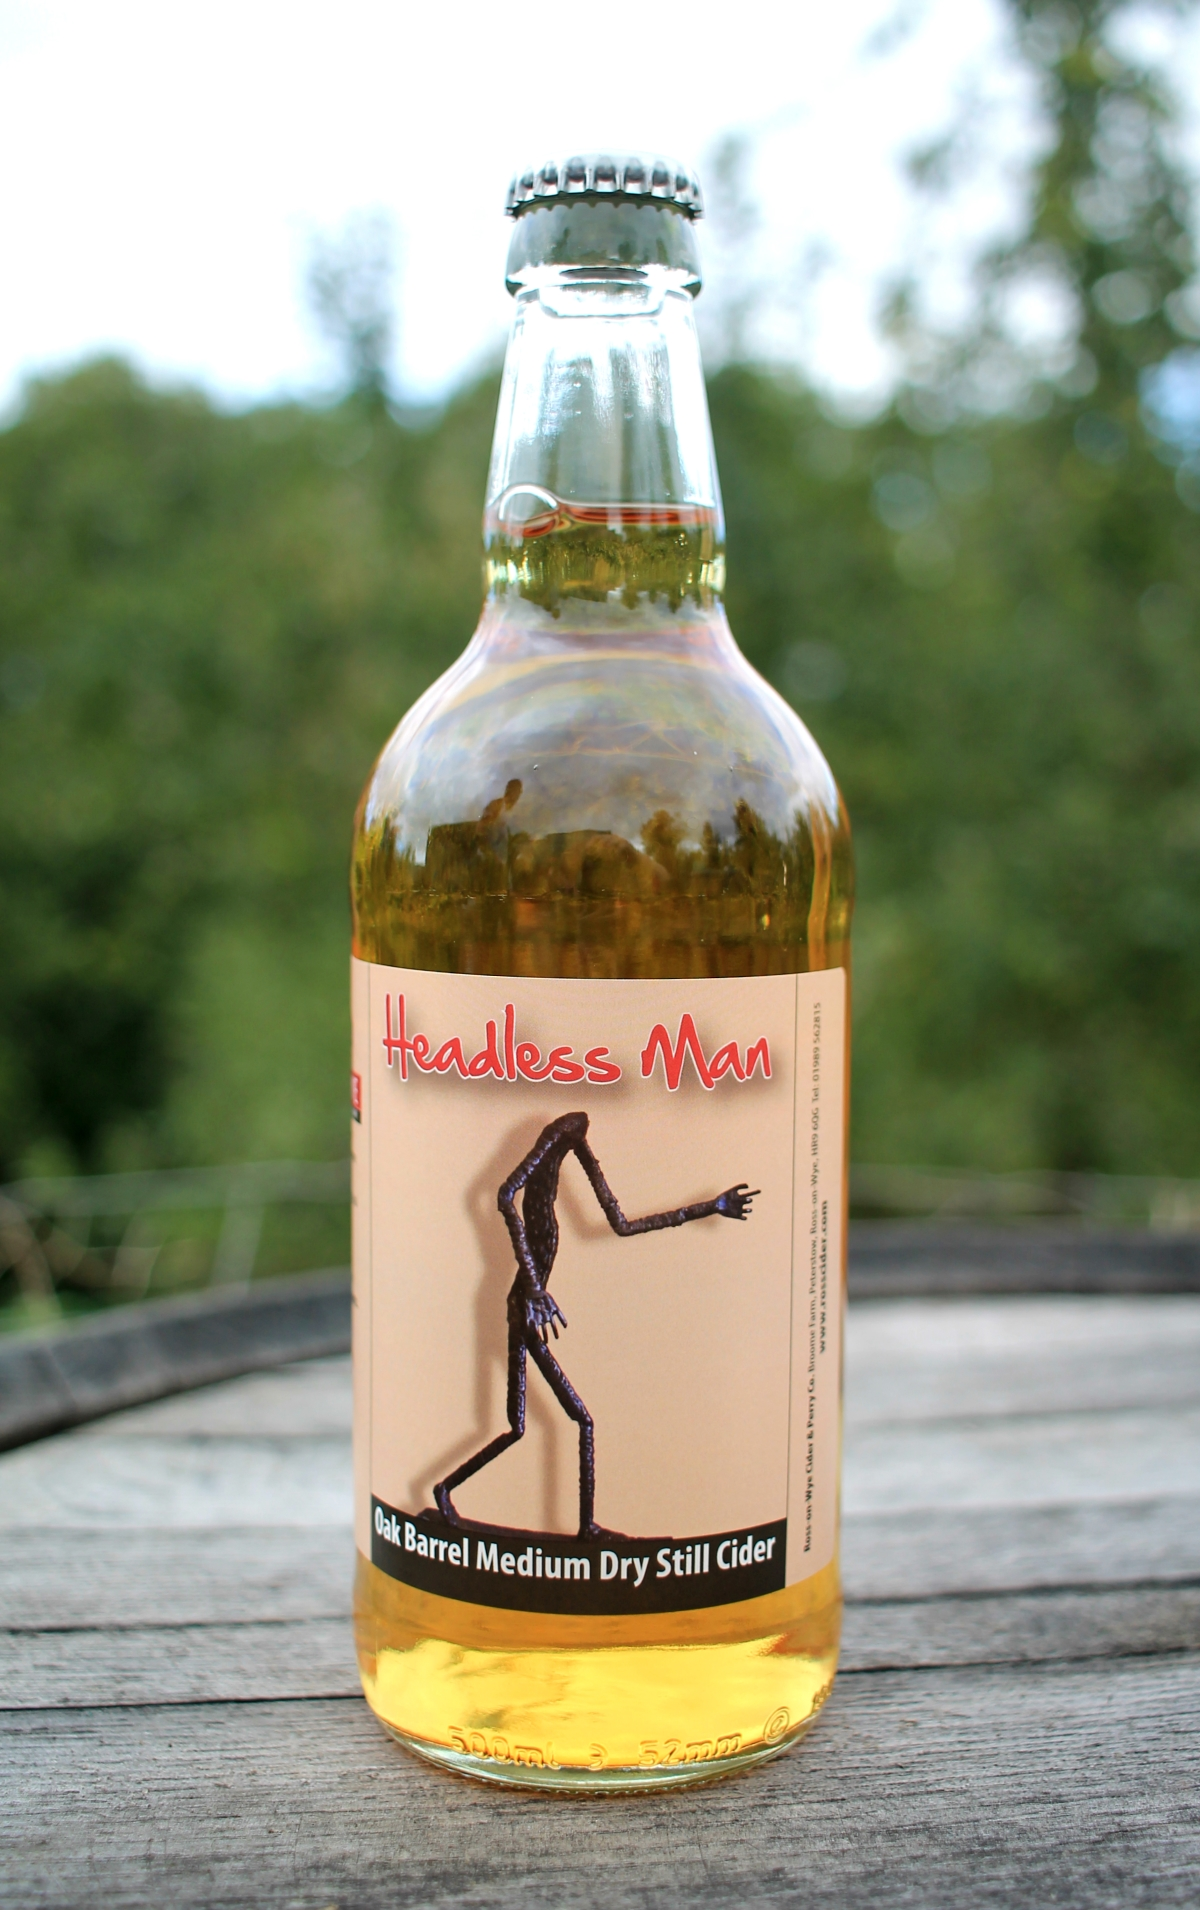 Headless Man Cider